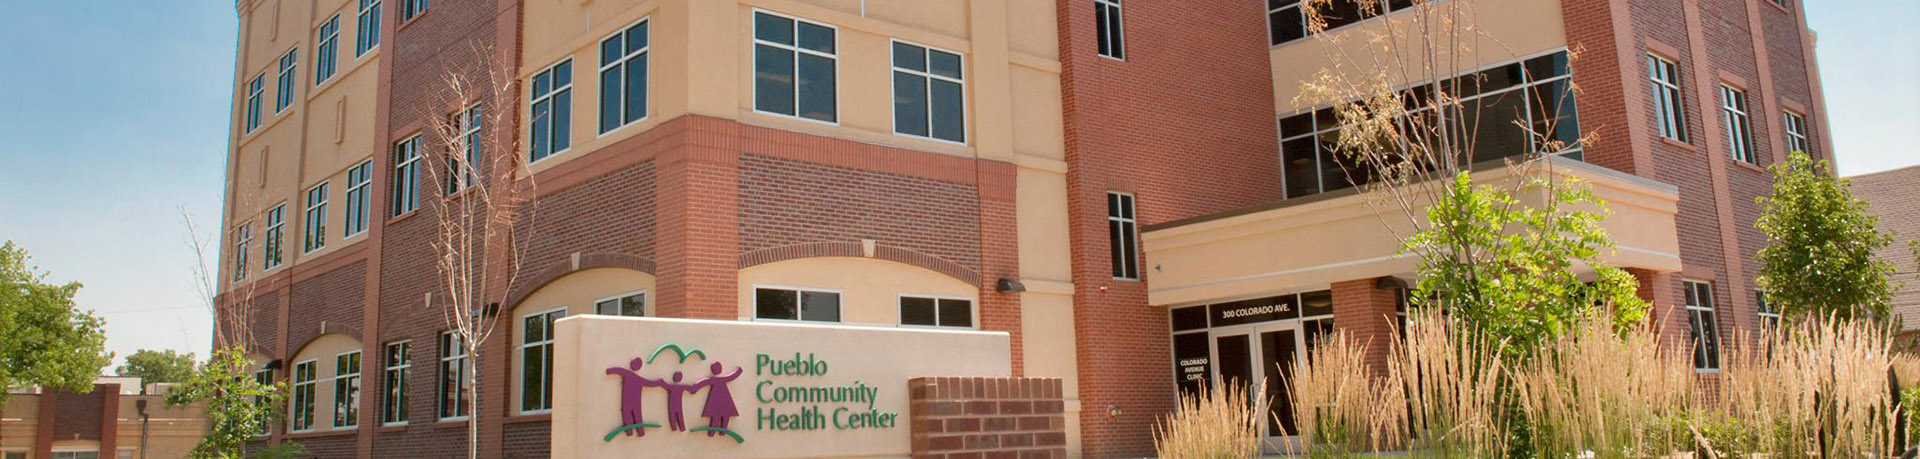 Pueblo Community Health Center Outside of Main Building